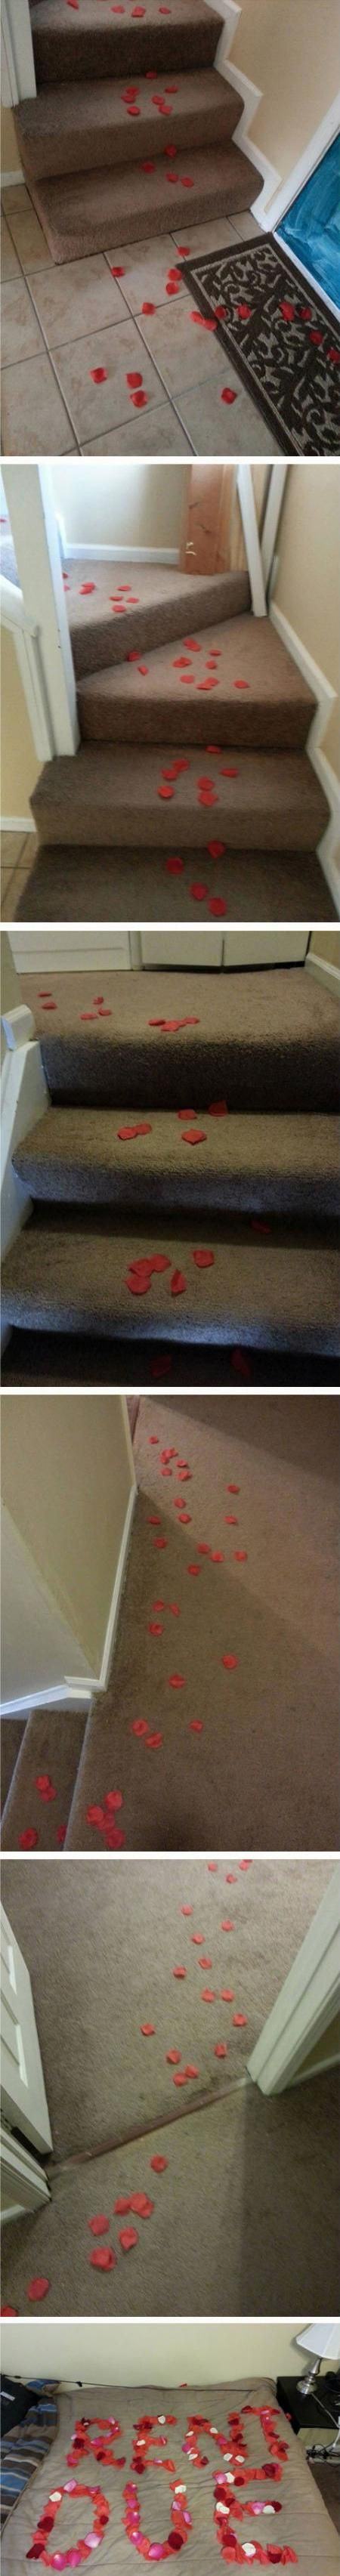 It's All About Love and Romance (23 pics)